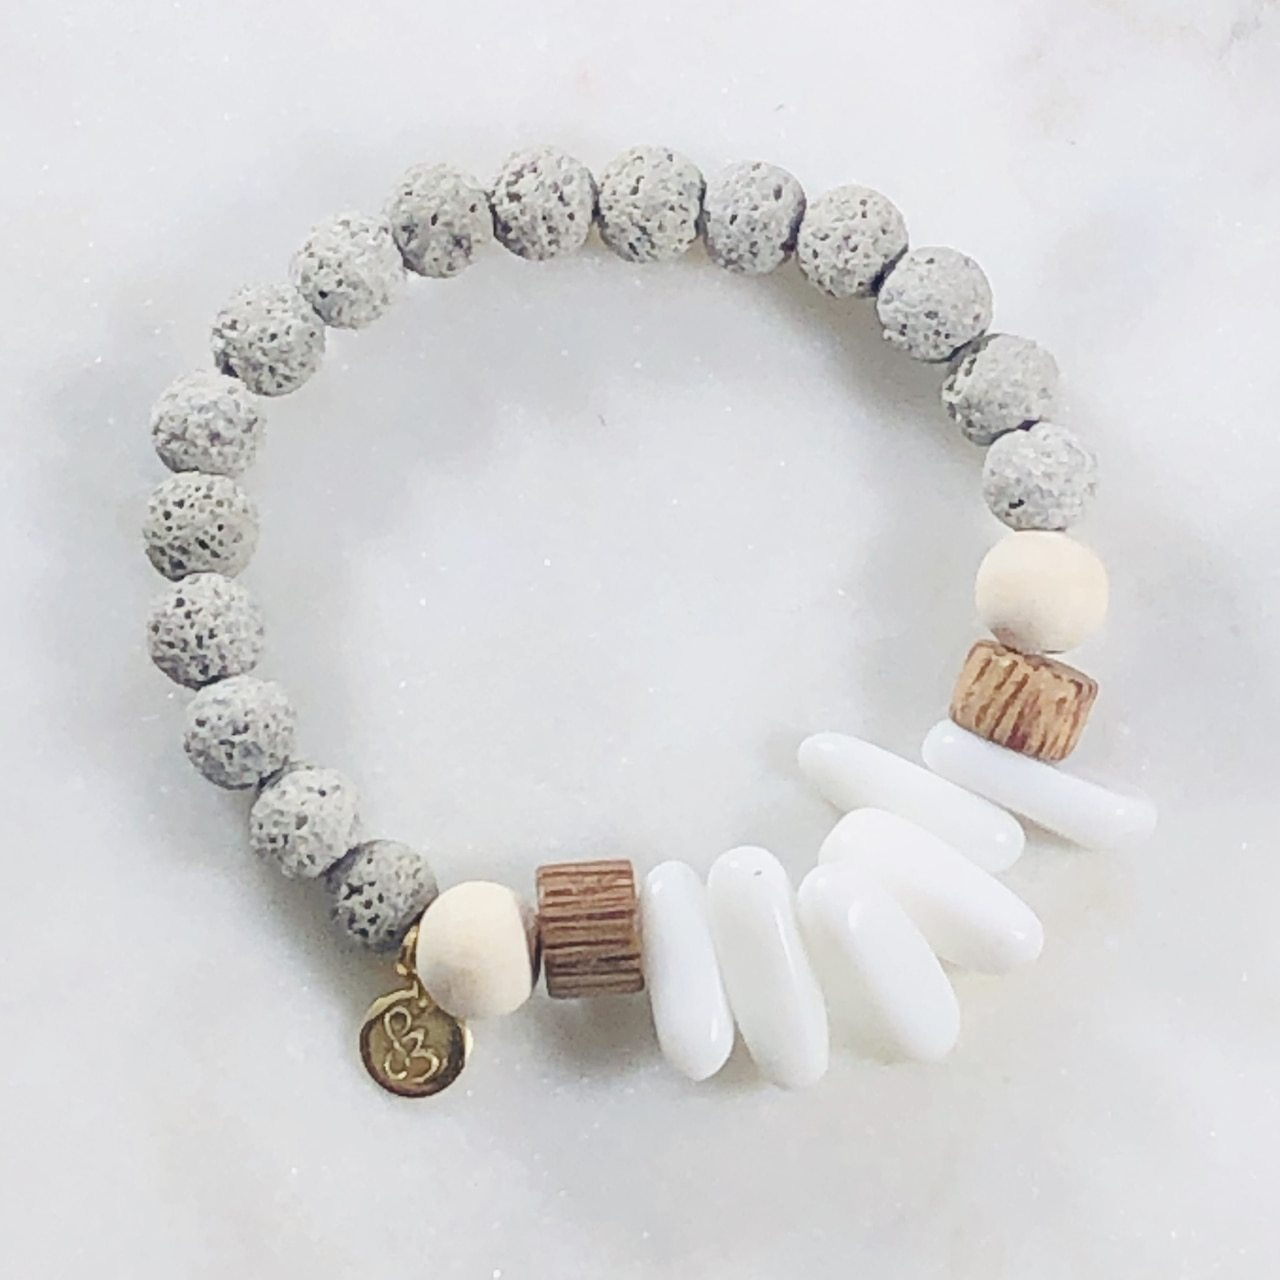 Mindful Stacking Bracelet (Diffuser)